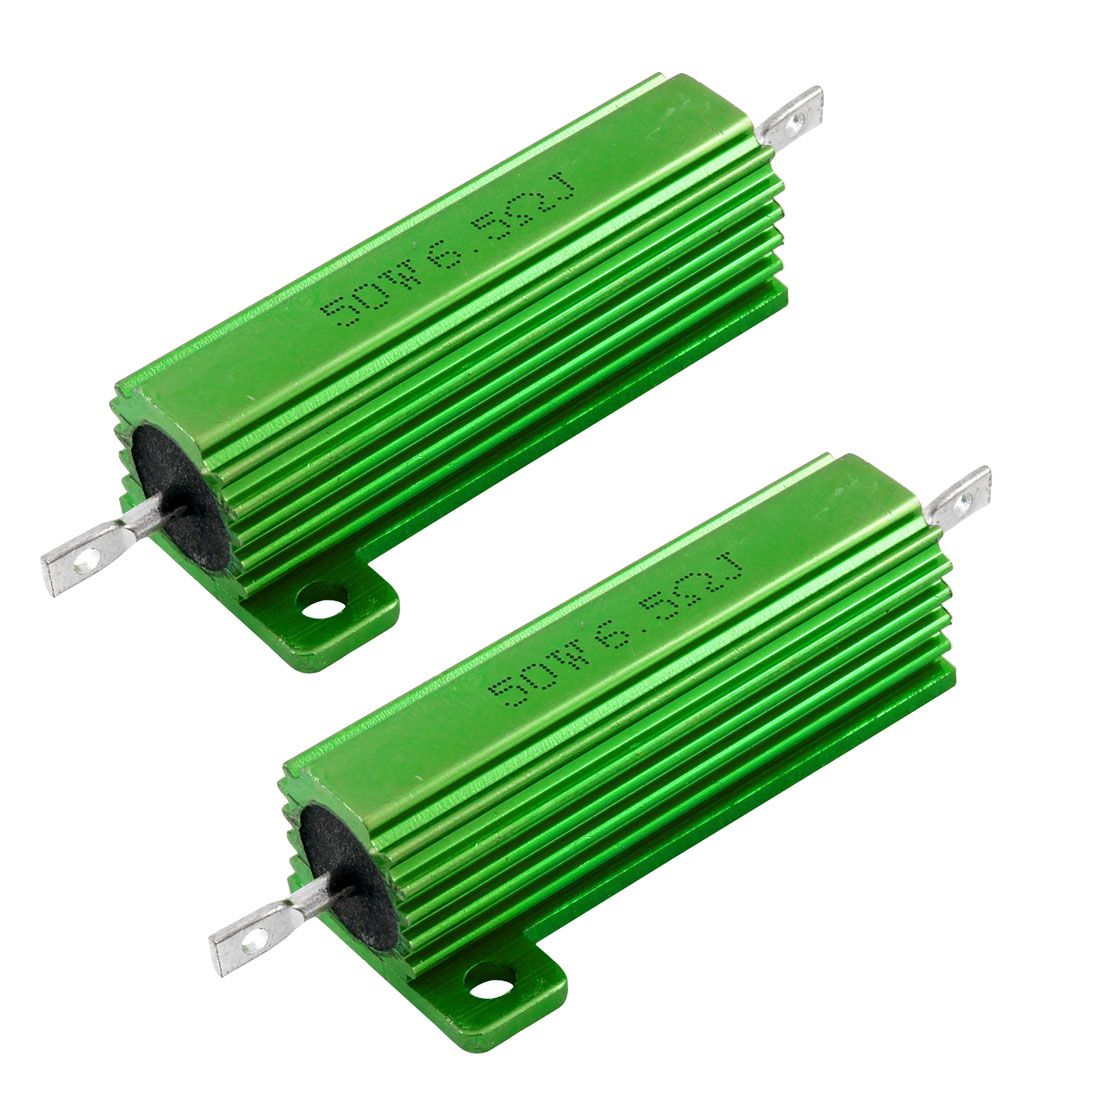 50W 6.5 Ohm Green Aluminum Housed Wirewound Resistors 2 Pcs